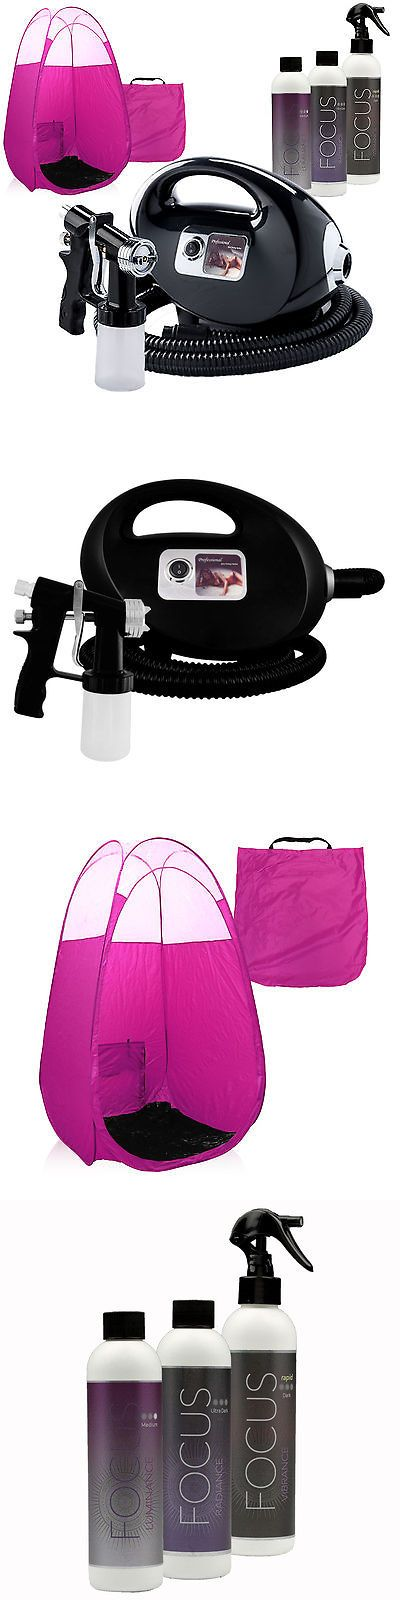 Airbrush Tanning Kits: Black Fascination Fx Spray Tanning Kit With Tan Solution And Pink Tent -> BUY IT NOW ONLY: $219 on eBay!